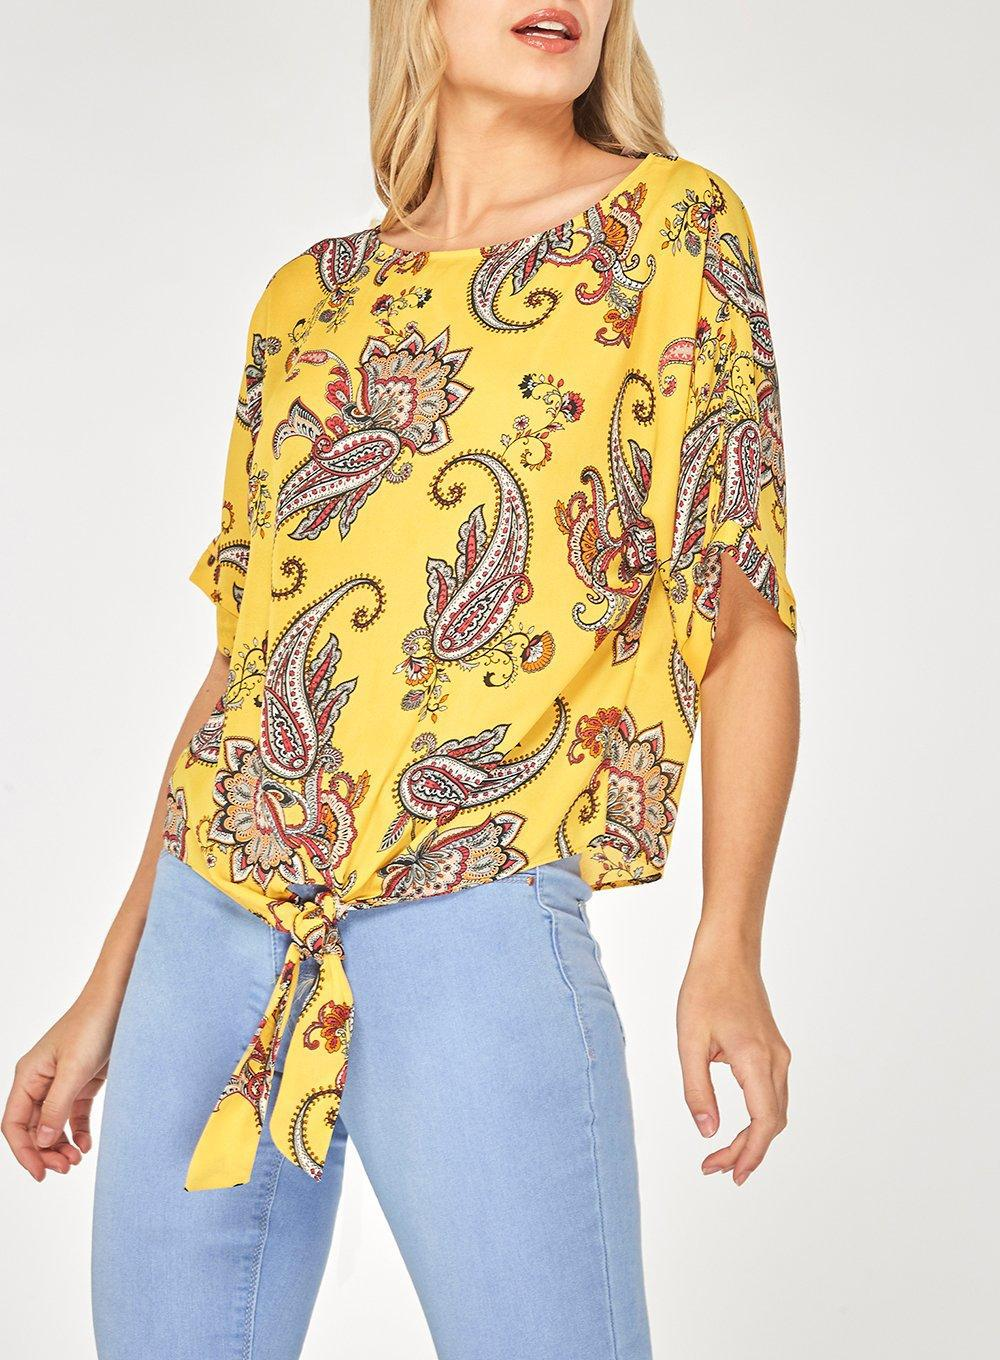 Visit Cheap Online 2018 Unisex Cheap Online Dorothy Perkins Womens Ochre Print Tie Top- Buy Cheap Find Great Sale Pay With Paypal Cheap Price Free Shipping cB3sc4lW